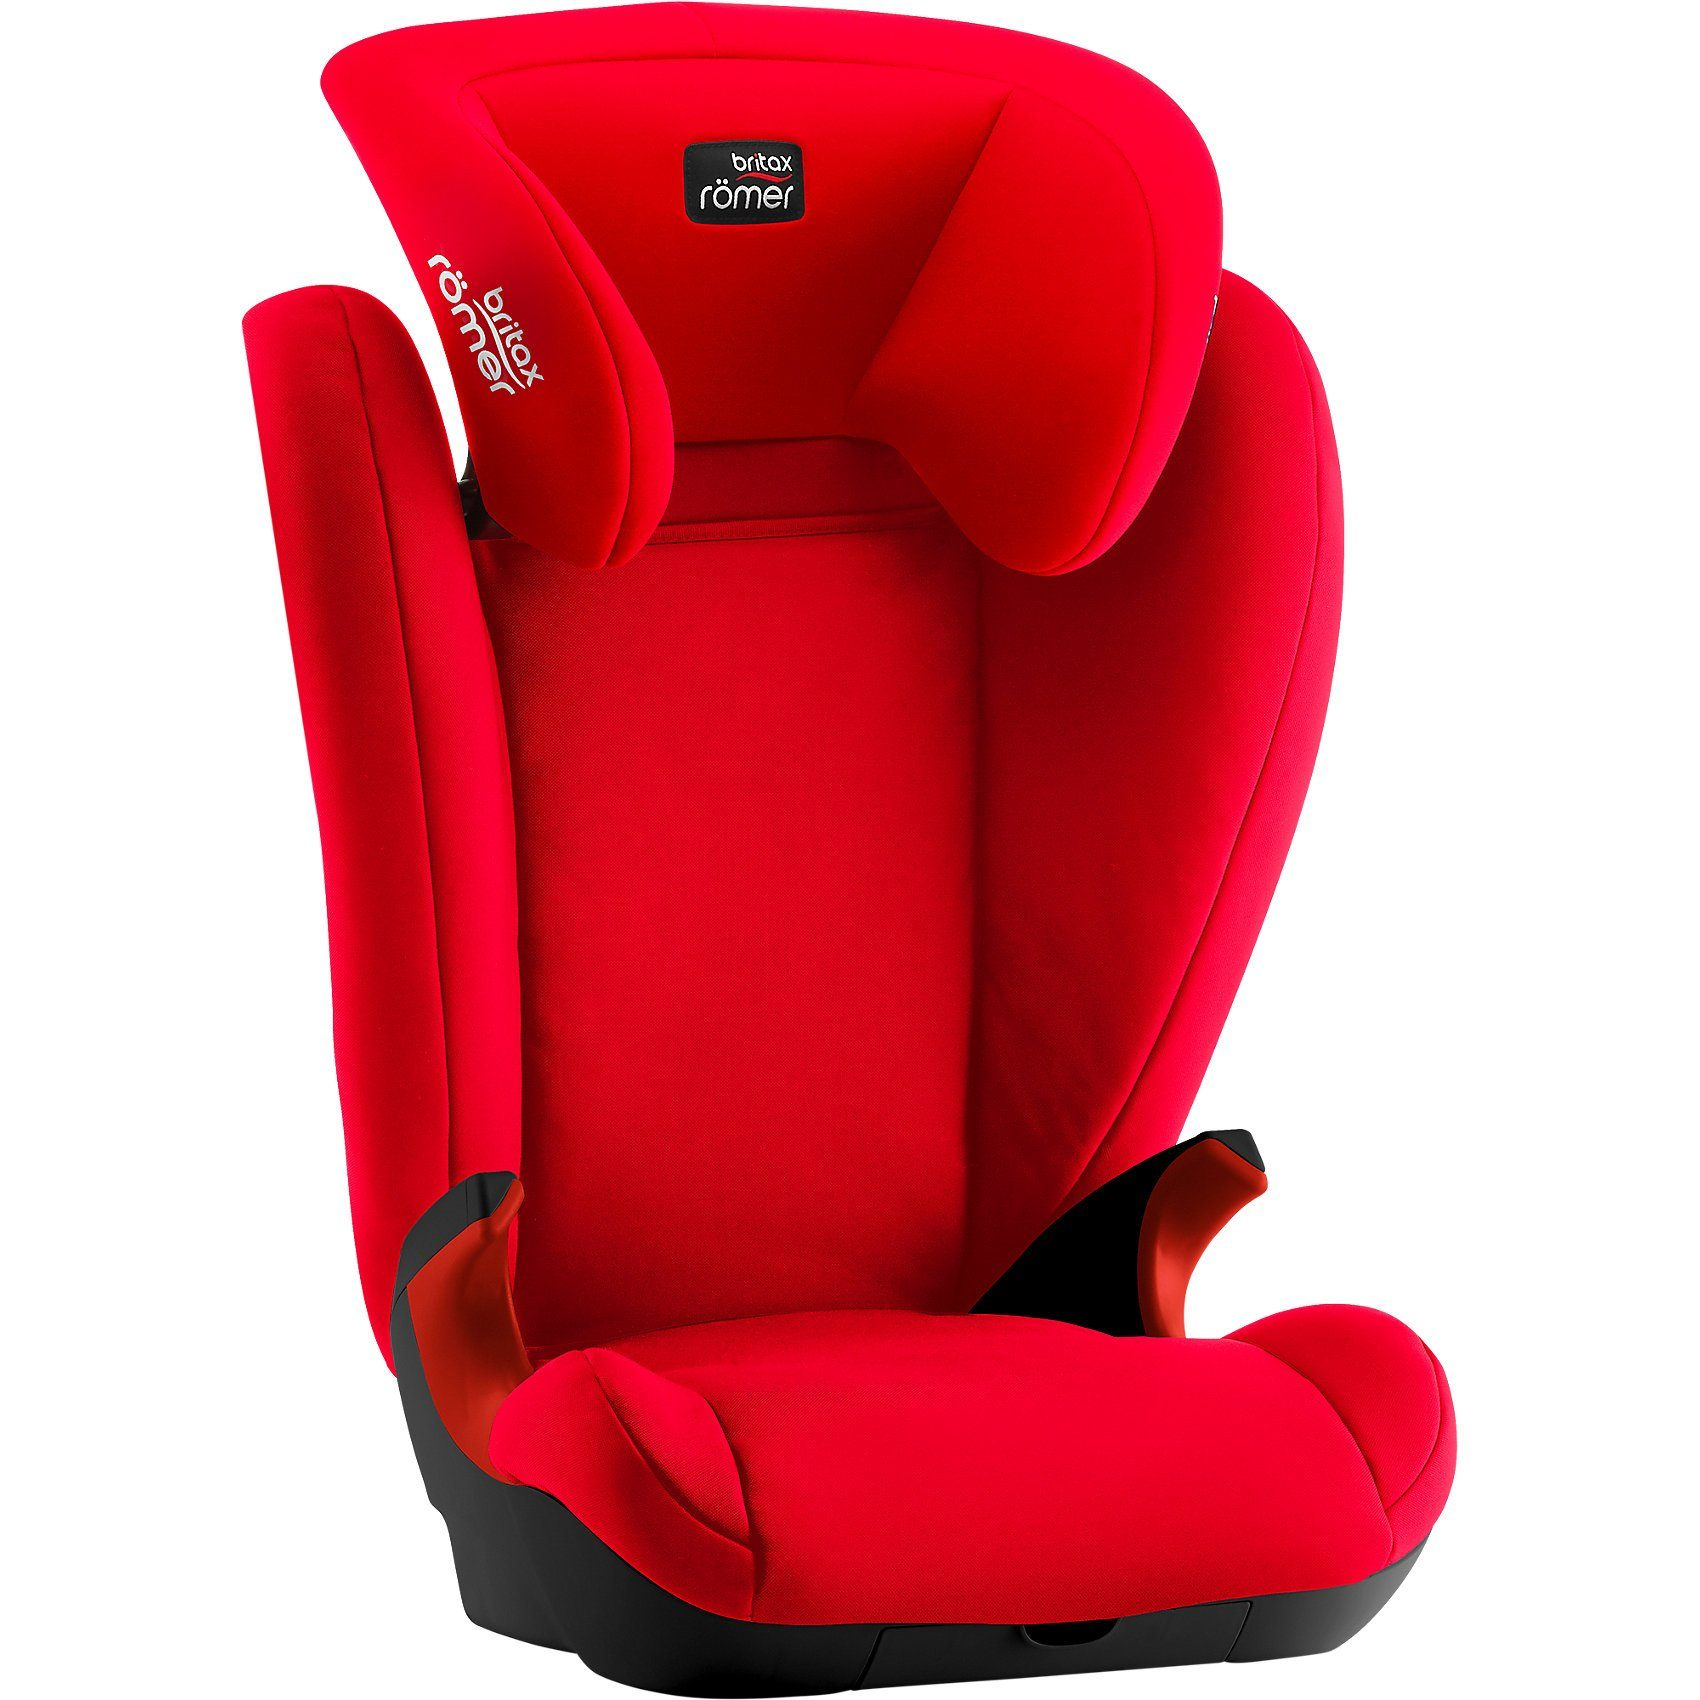 Maxi-cosi Auto-kindersitz Rubi Xp Poppy Red 2018 Britax RÖmer Auto Kindersitz Kid Ii Black Series Fire Red Online Kaufen Otto